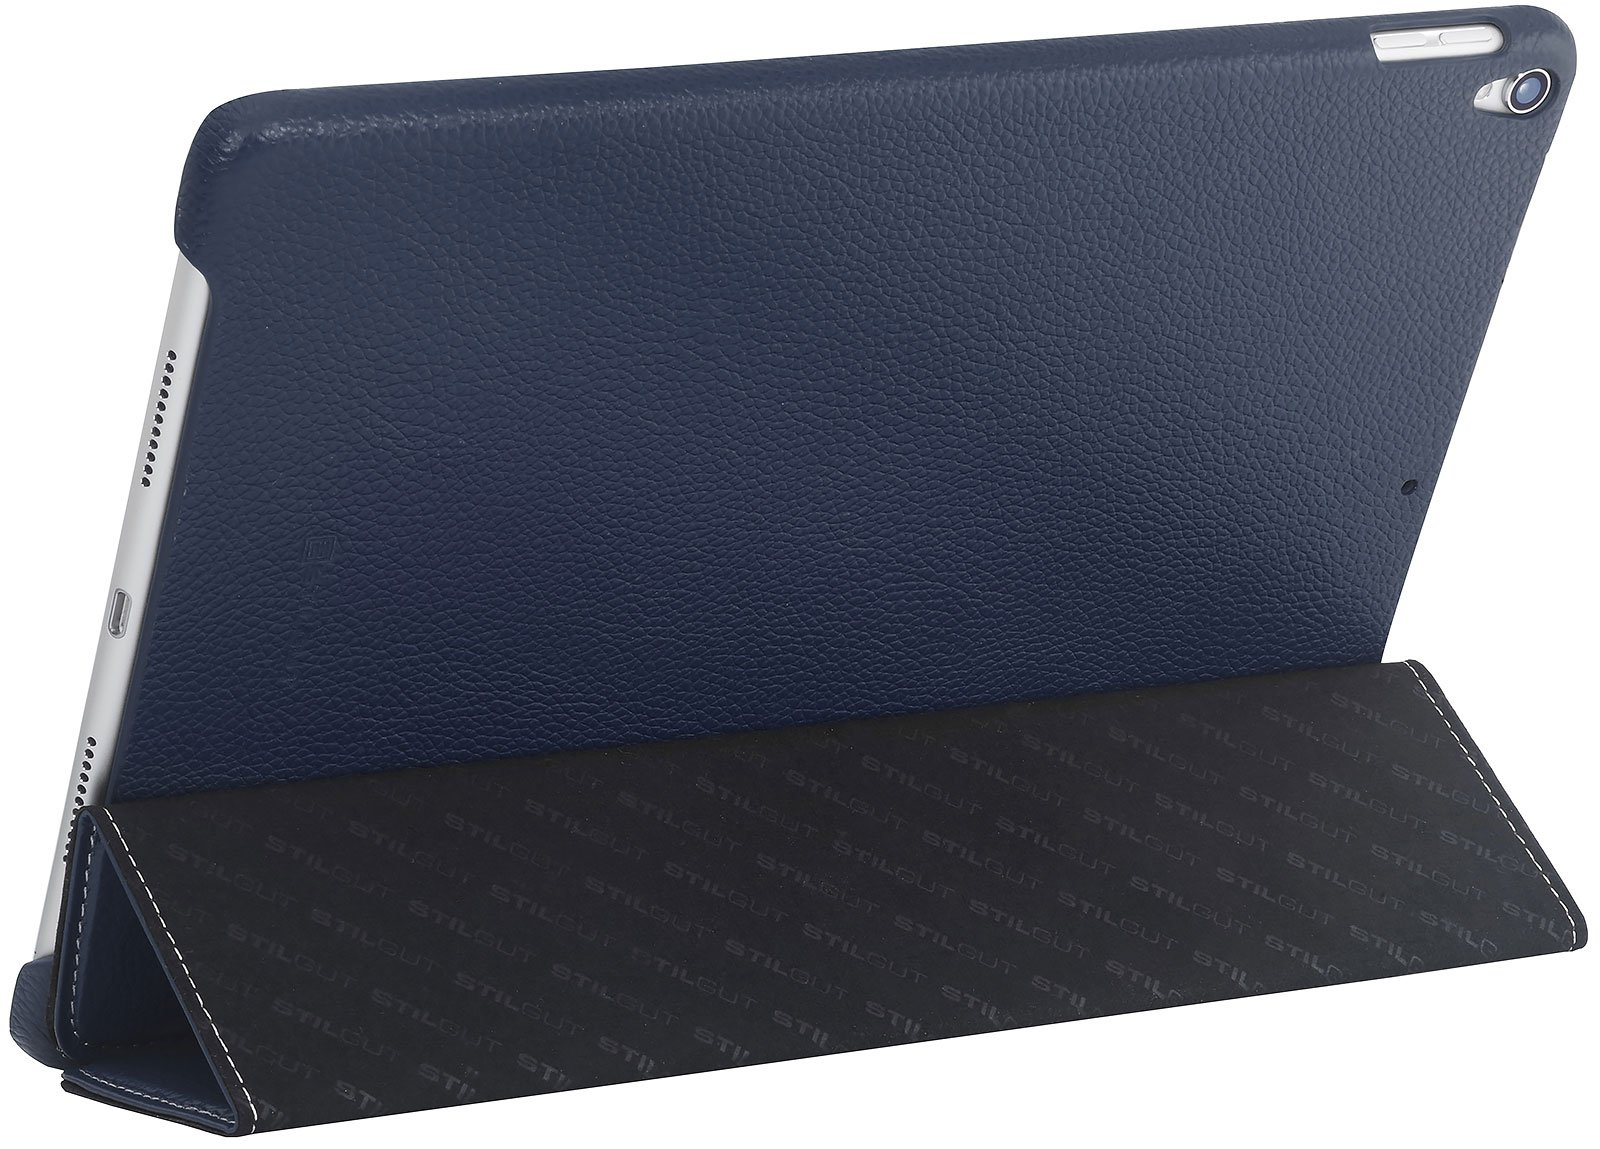 StilGut Couverture, Case for iPad Pro 10.5'' (2017 Edition), Genuine Leather Case with Folded Cover Design, Stand Function & Smart-Cover (Auto Sleep, Wake-up), Midnight Blue